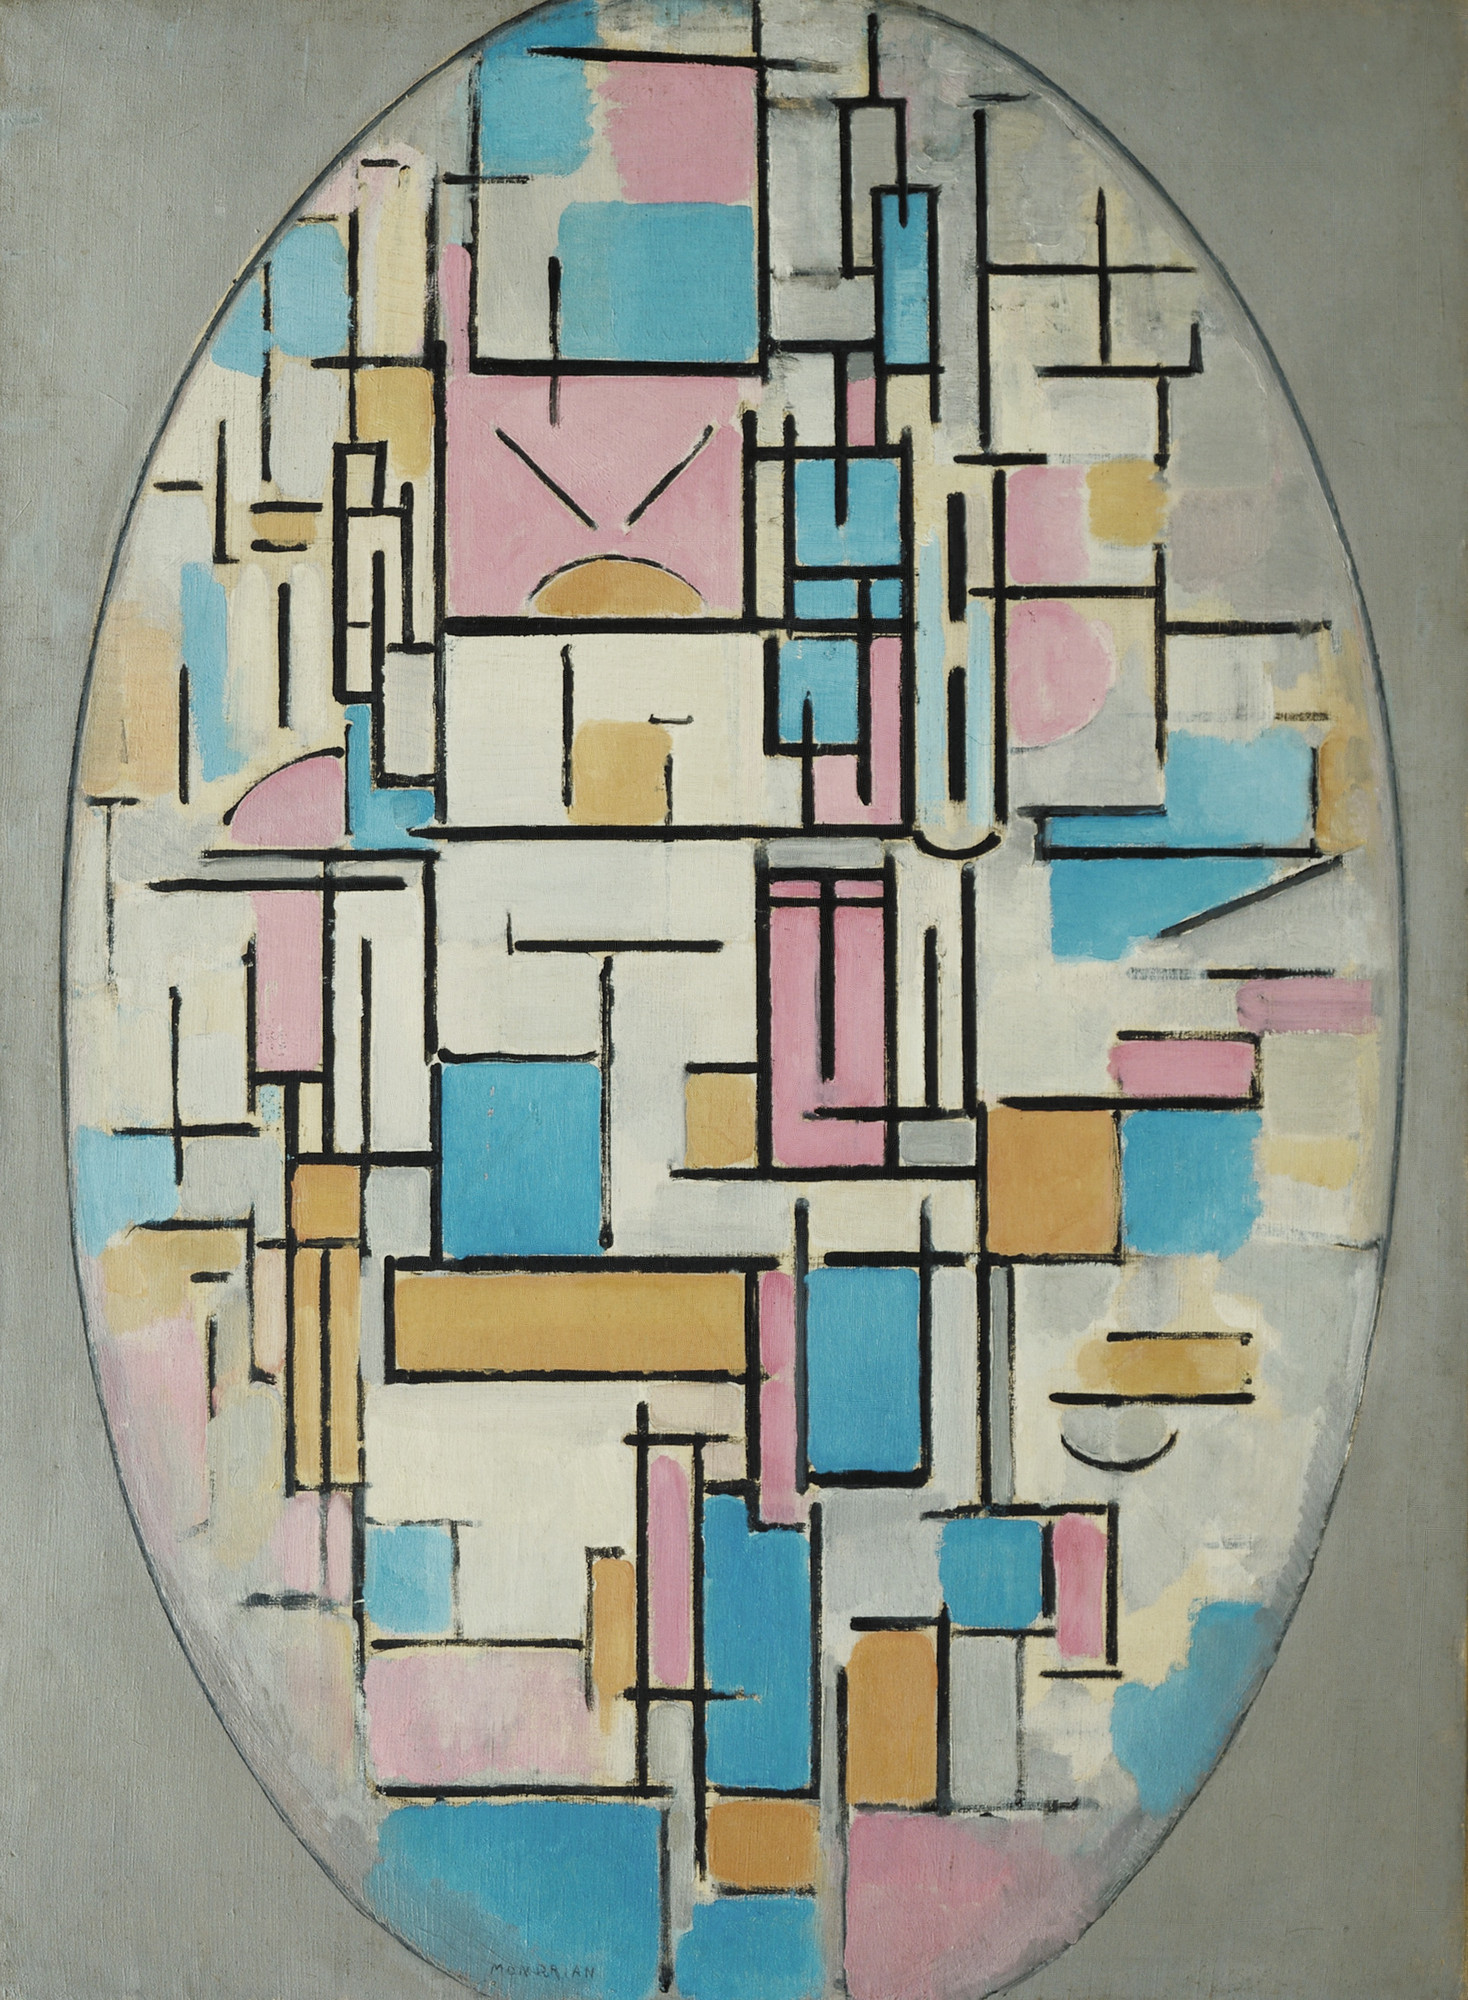 Piet Mondrian. Composition in Oval with Color Planes 1. 1914